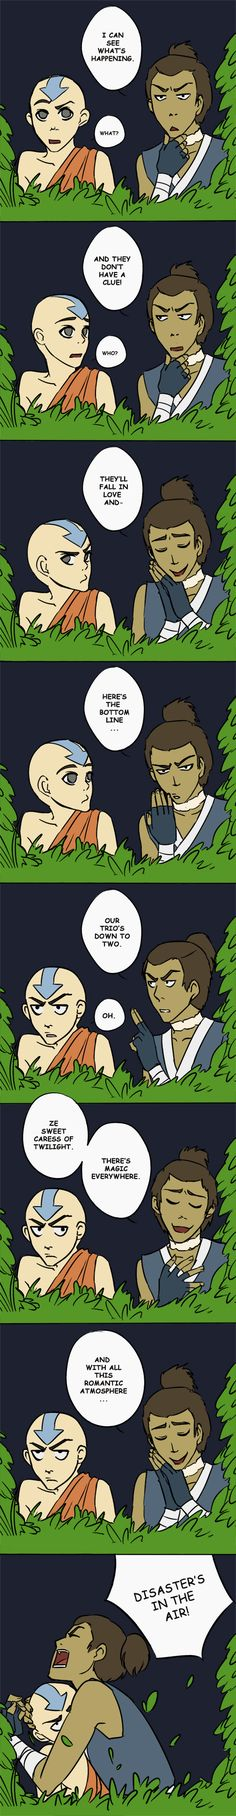 Sokka Feels the Love by beanaroony.deviantart.com